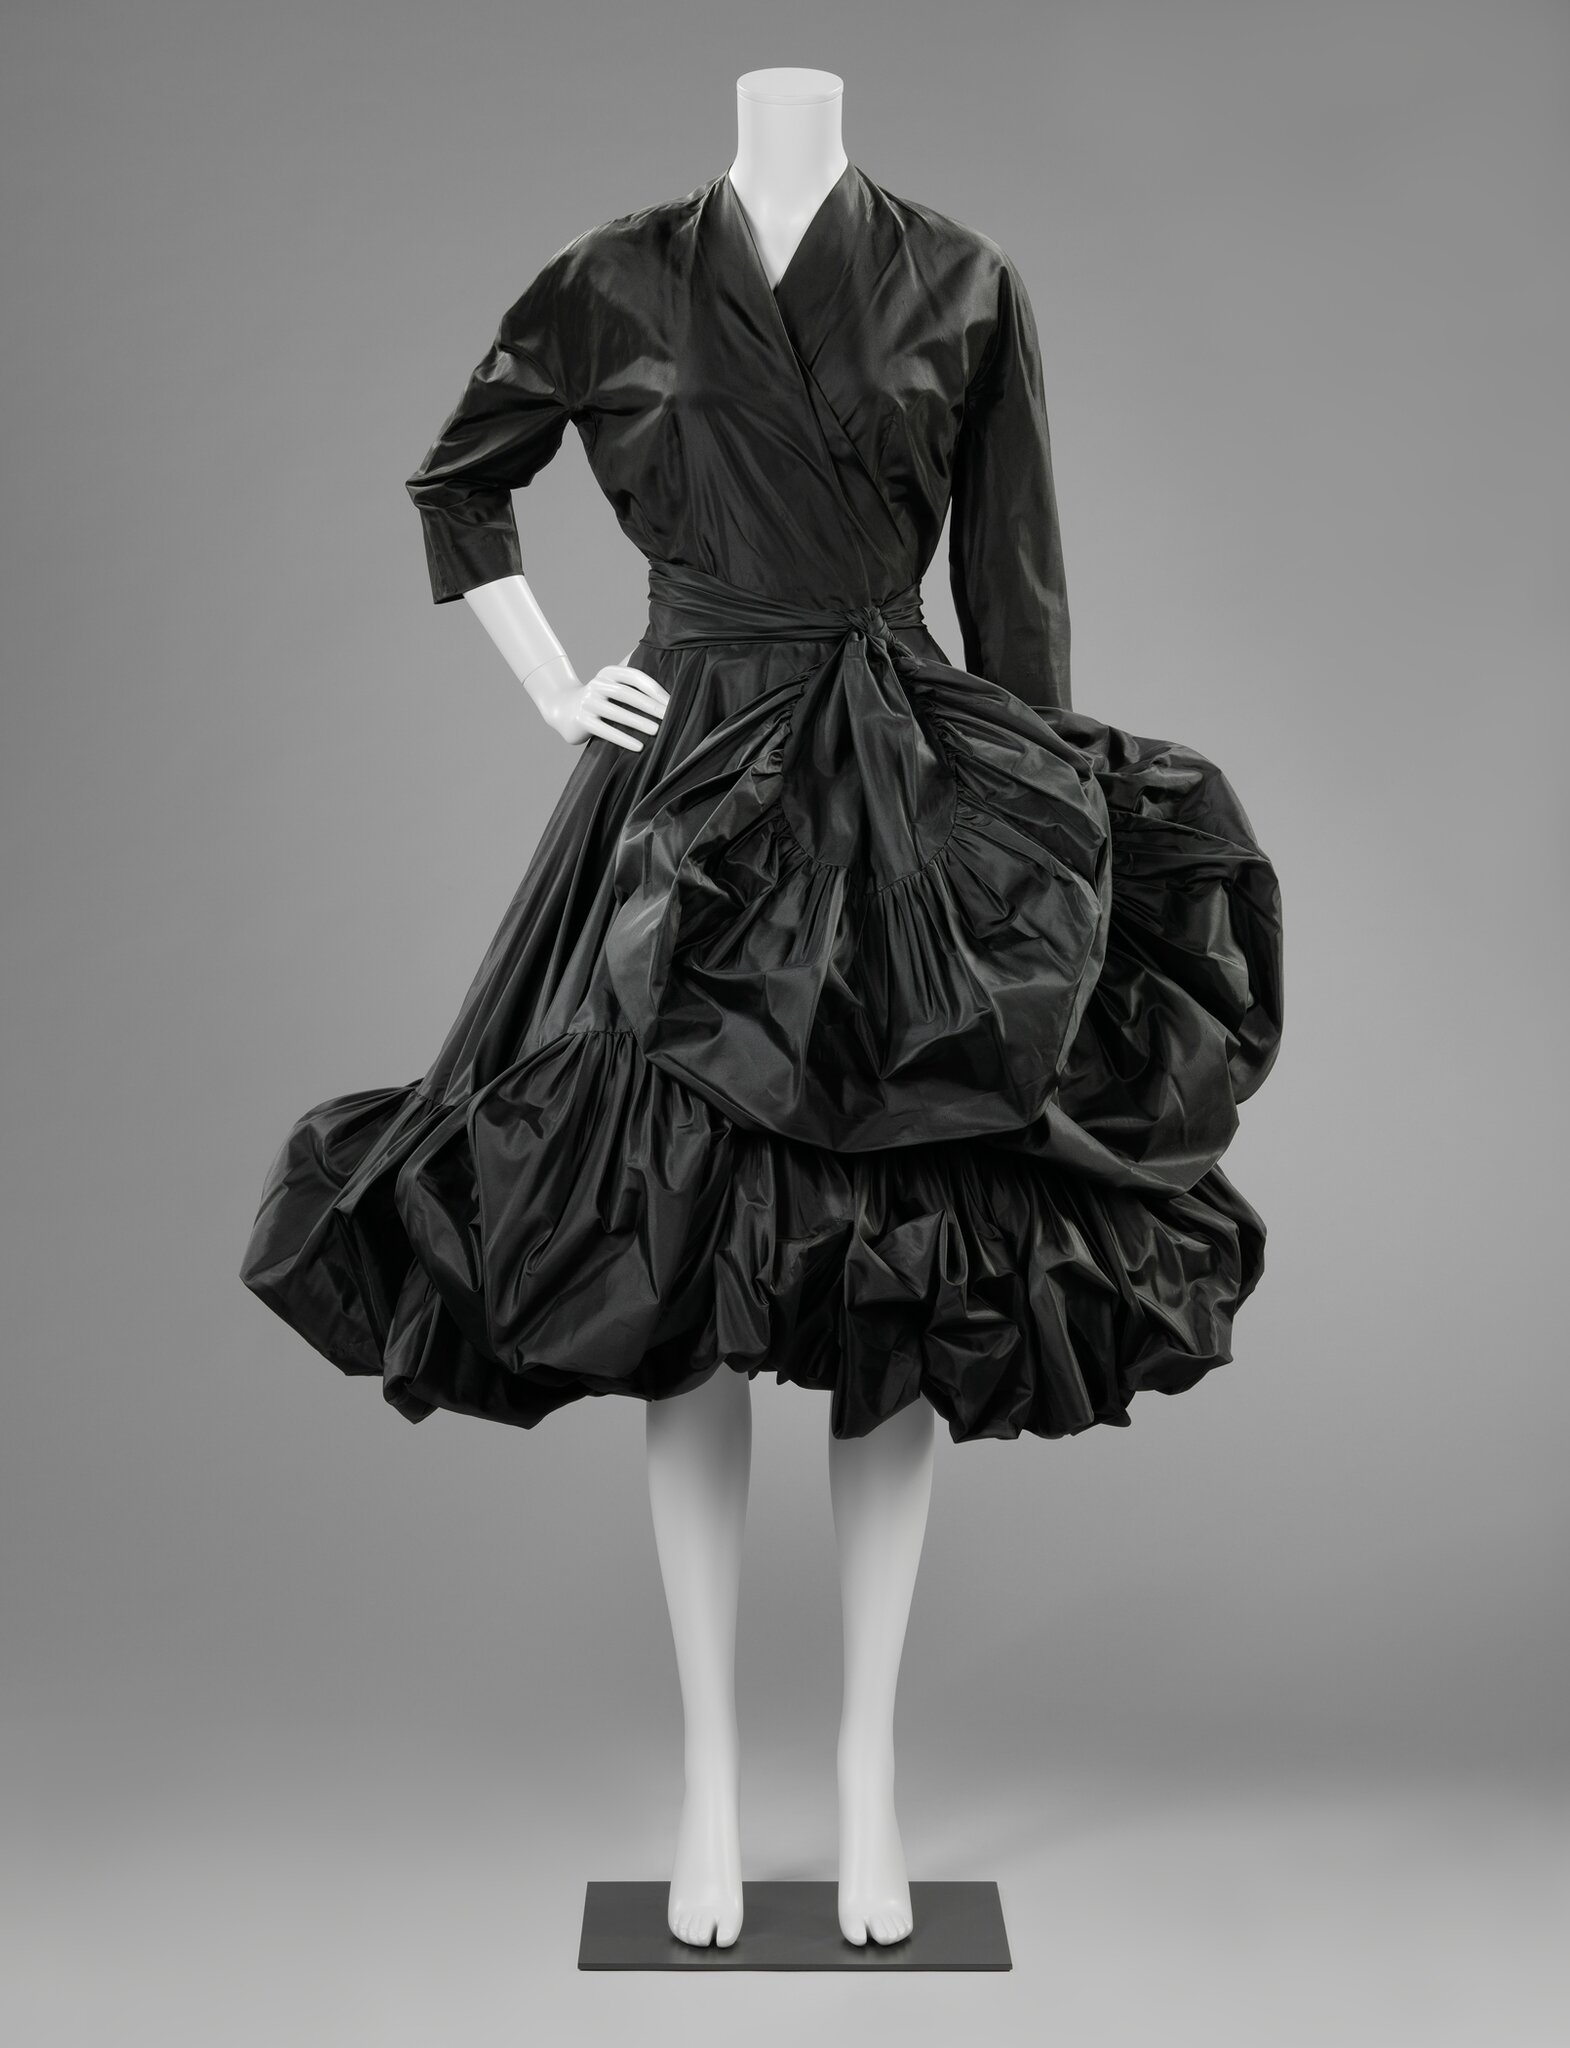 Cocktail dress, Cristóbal Balenciaga (1951-1952)